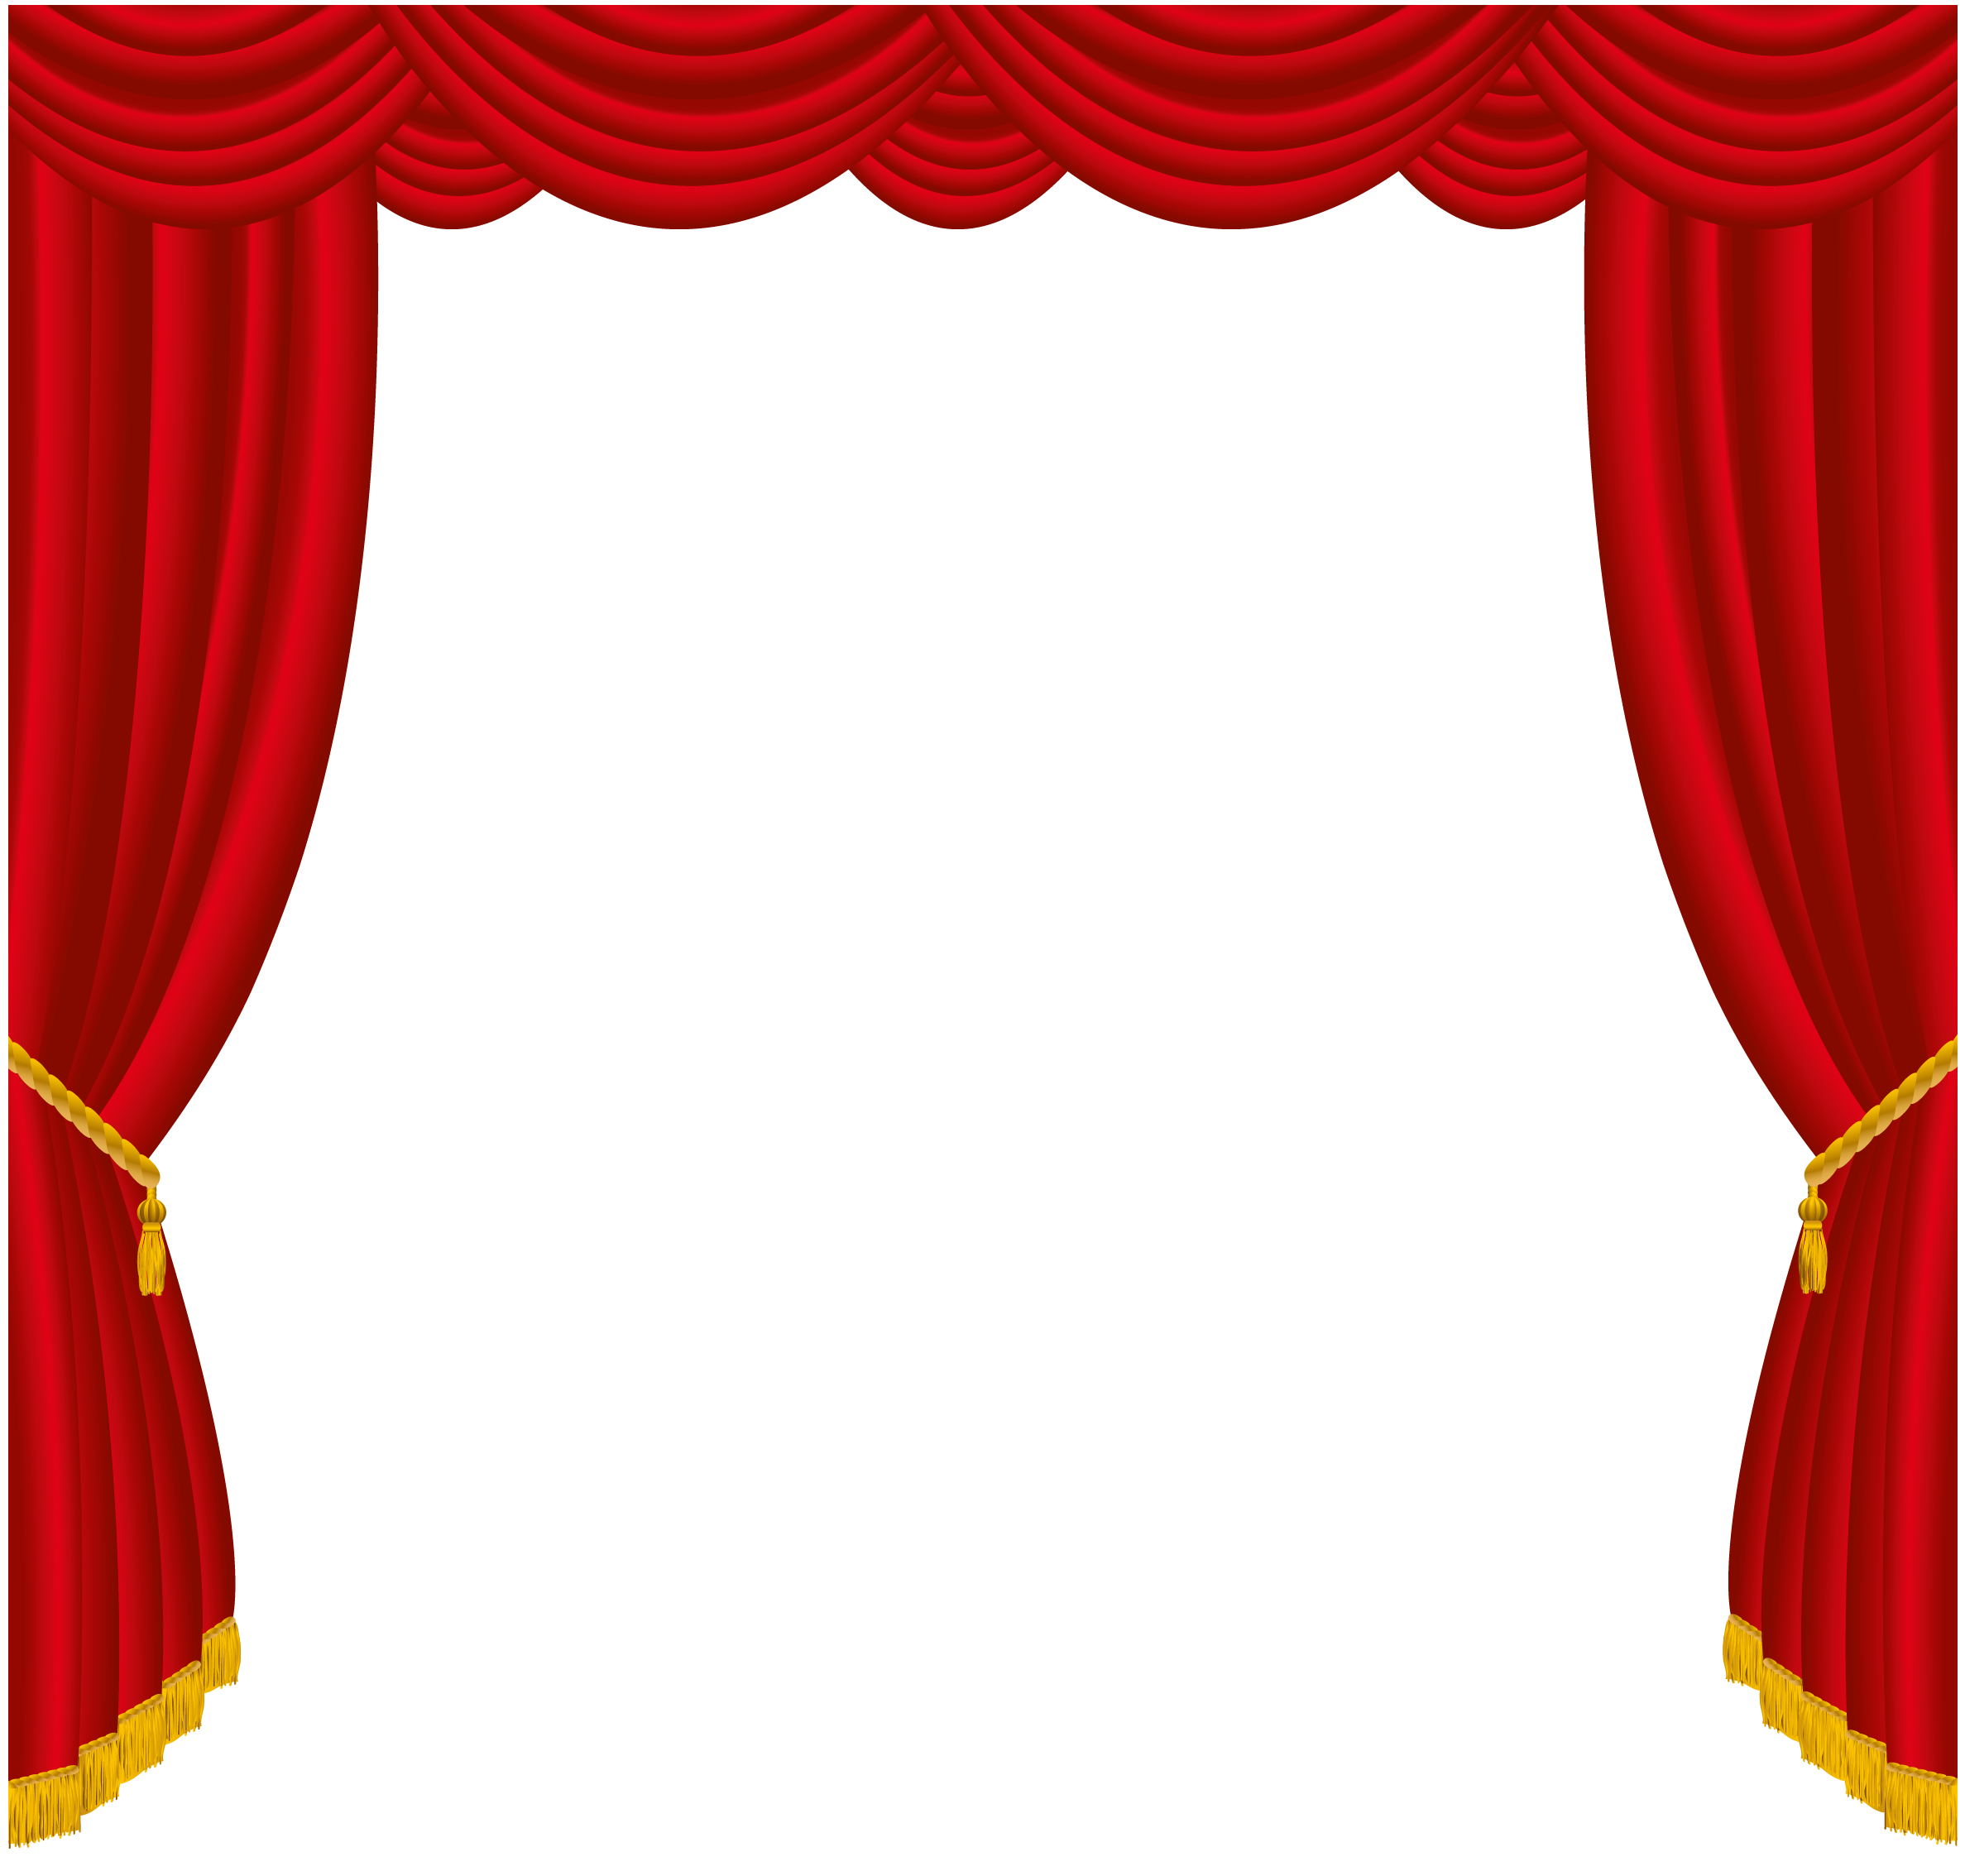 Curtains transparent. Red decor png clipart